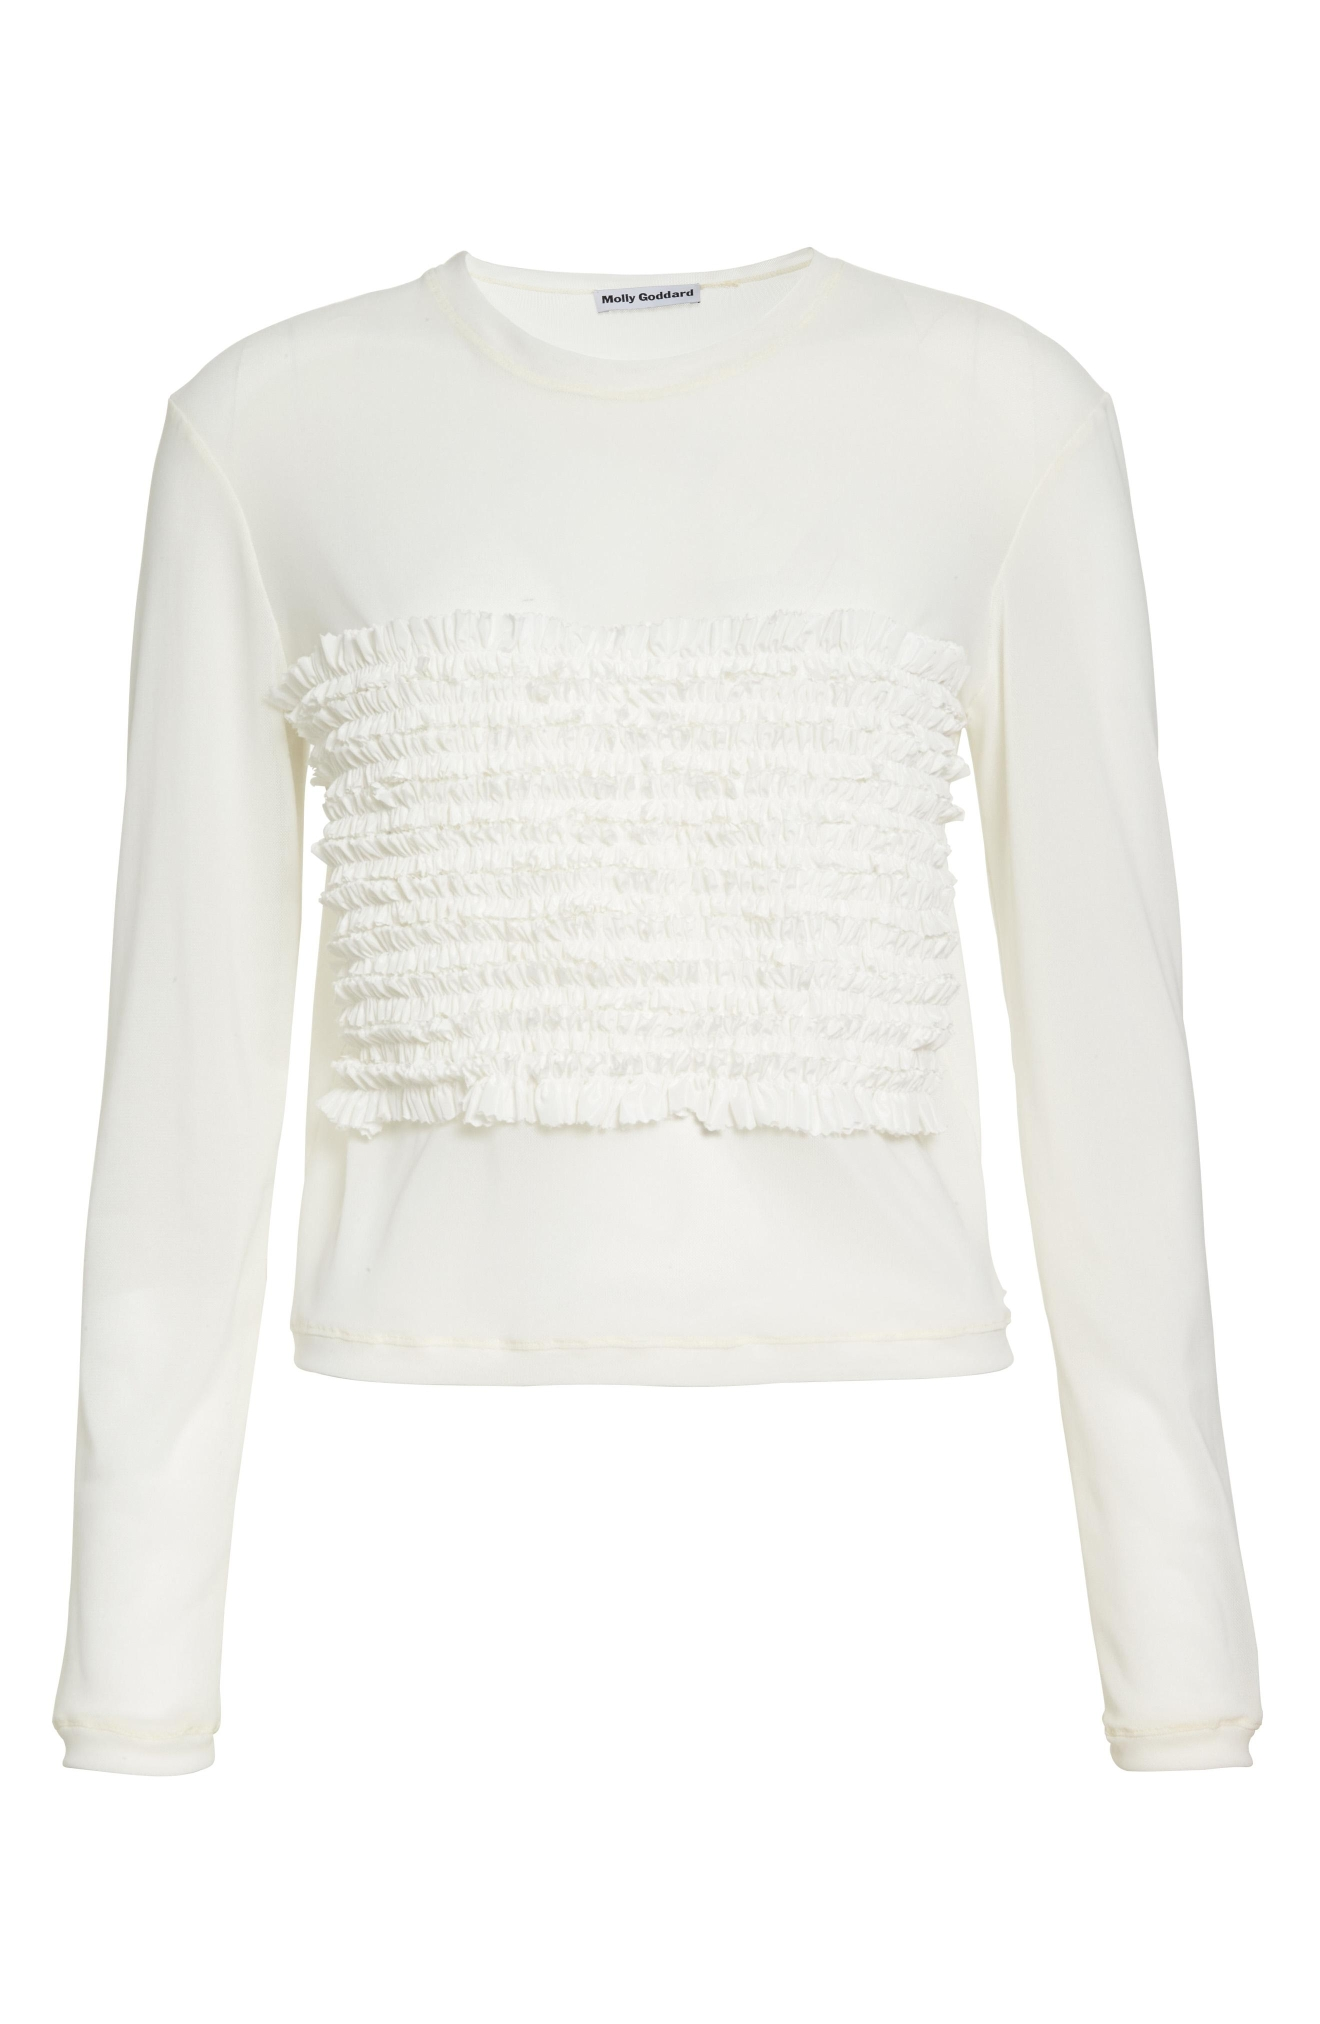 Molly Goddard T-Shirt with Taffeta Frills - $295. Get it at nordstrom.com/space. (Image: Nordstrom)